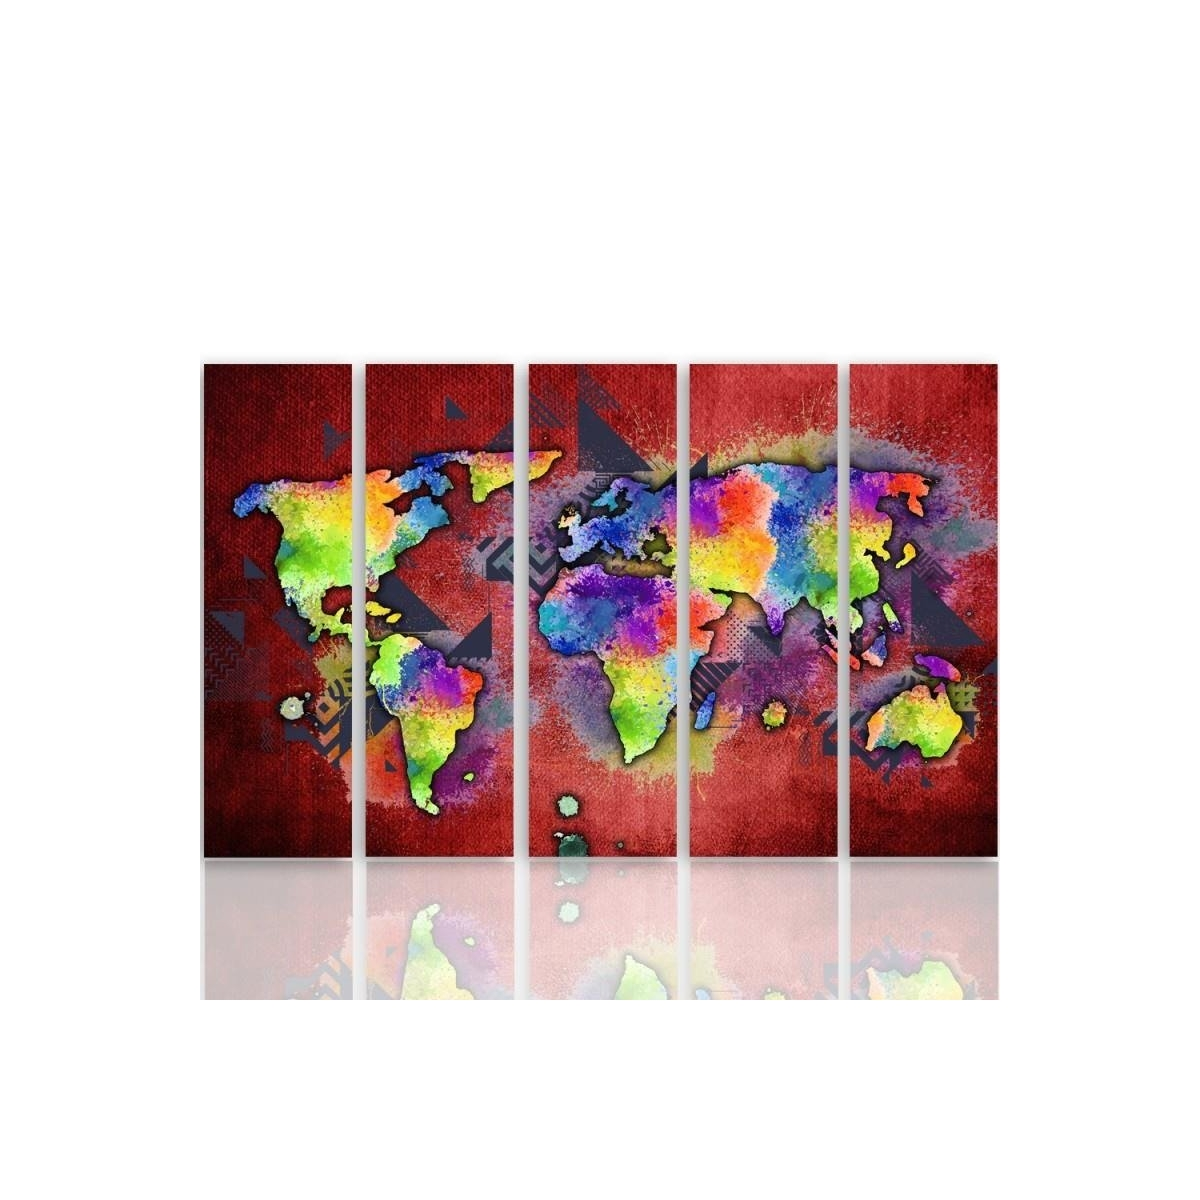 Five Part Picture On Canvas, Pentaptych, Type C, Colorful Map Of The World 100x150